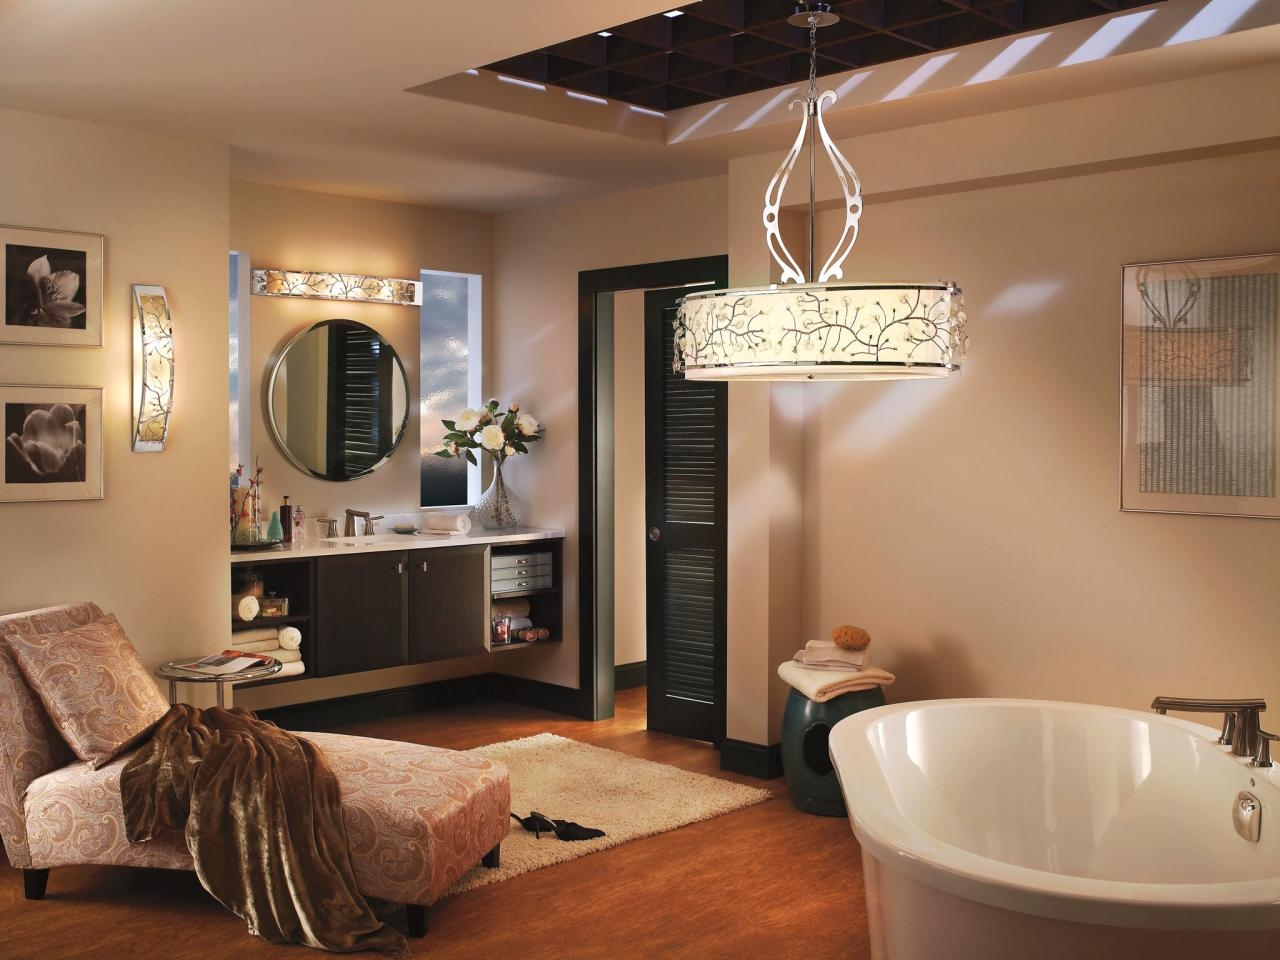 Modern Bathroom Light Fixtures Modern Bathroom Lighting And Throughout Bathroom Chandelier Lighting (Image 18 of 25)